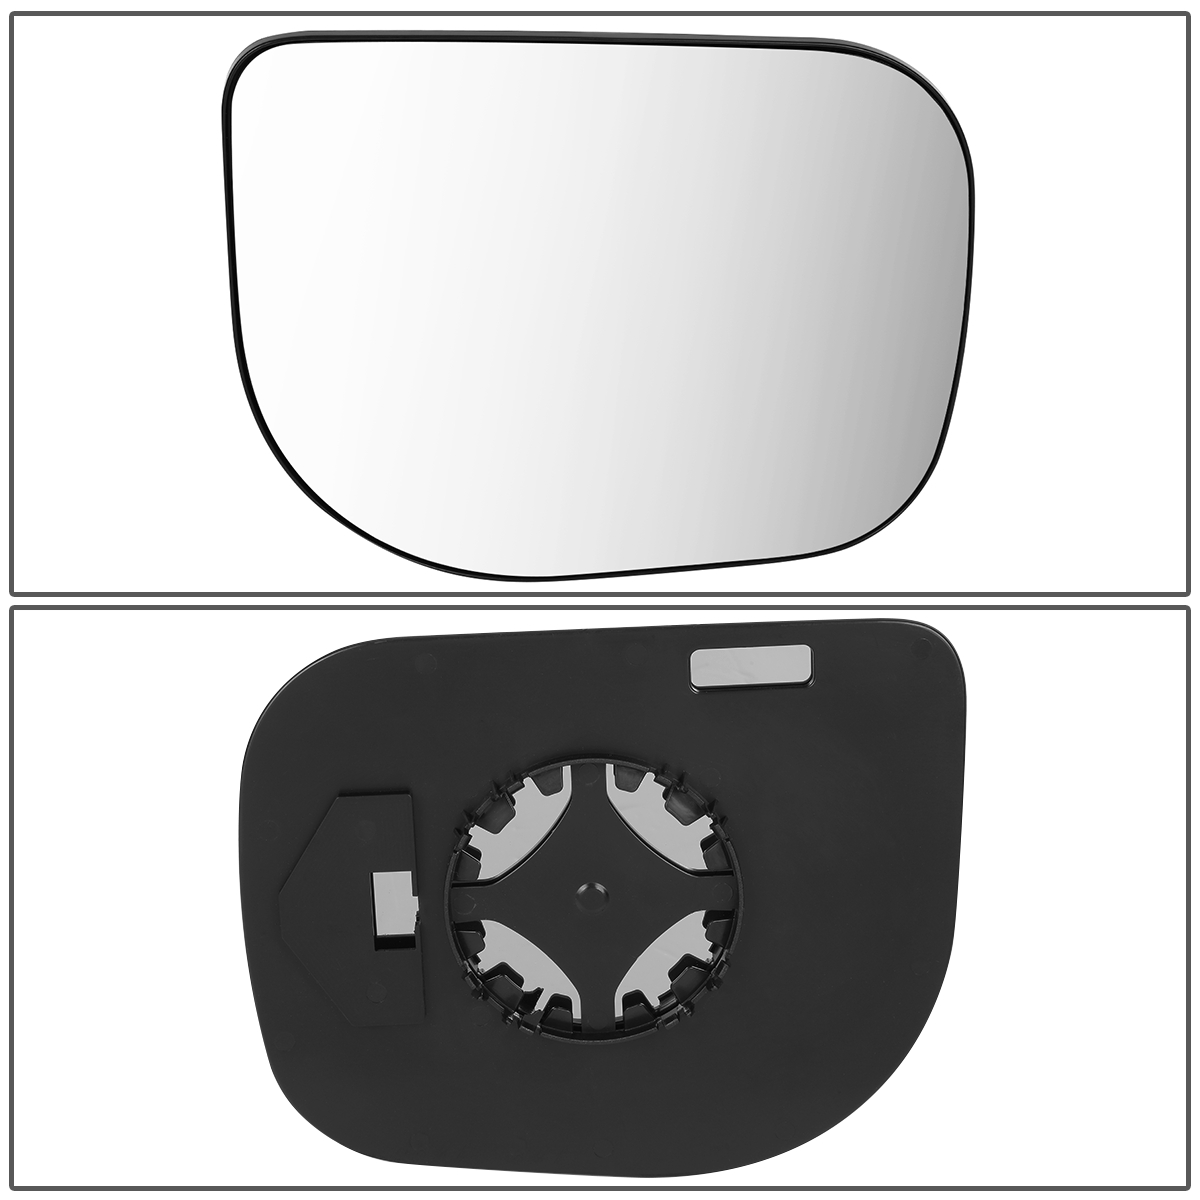 Used Infiniti Qx56 Exterior Mirrors For Sale Manual Guide